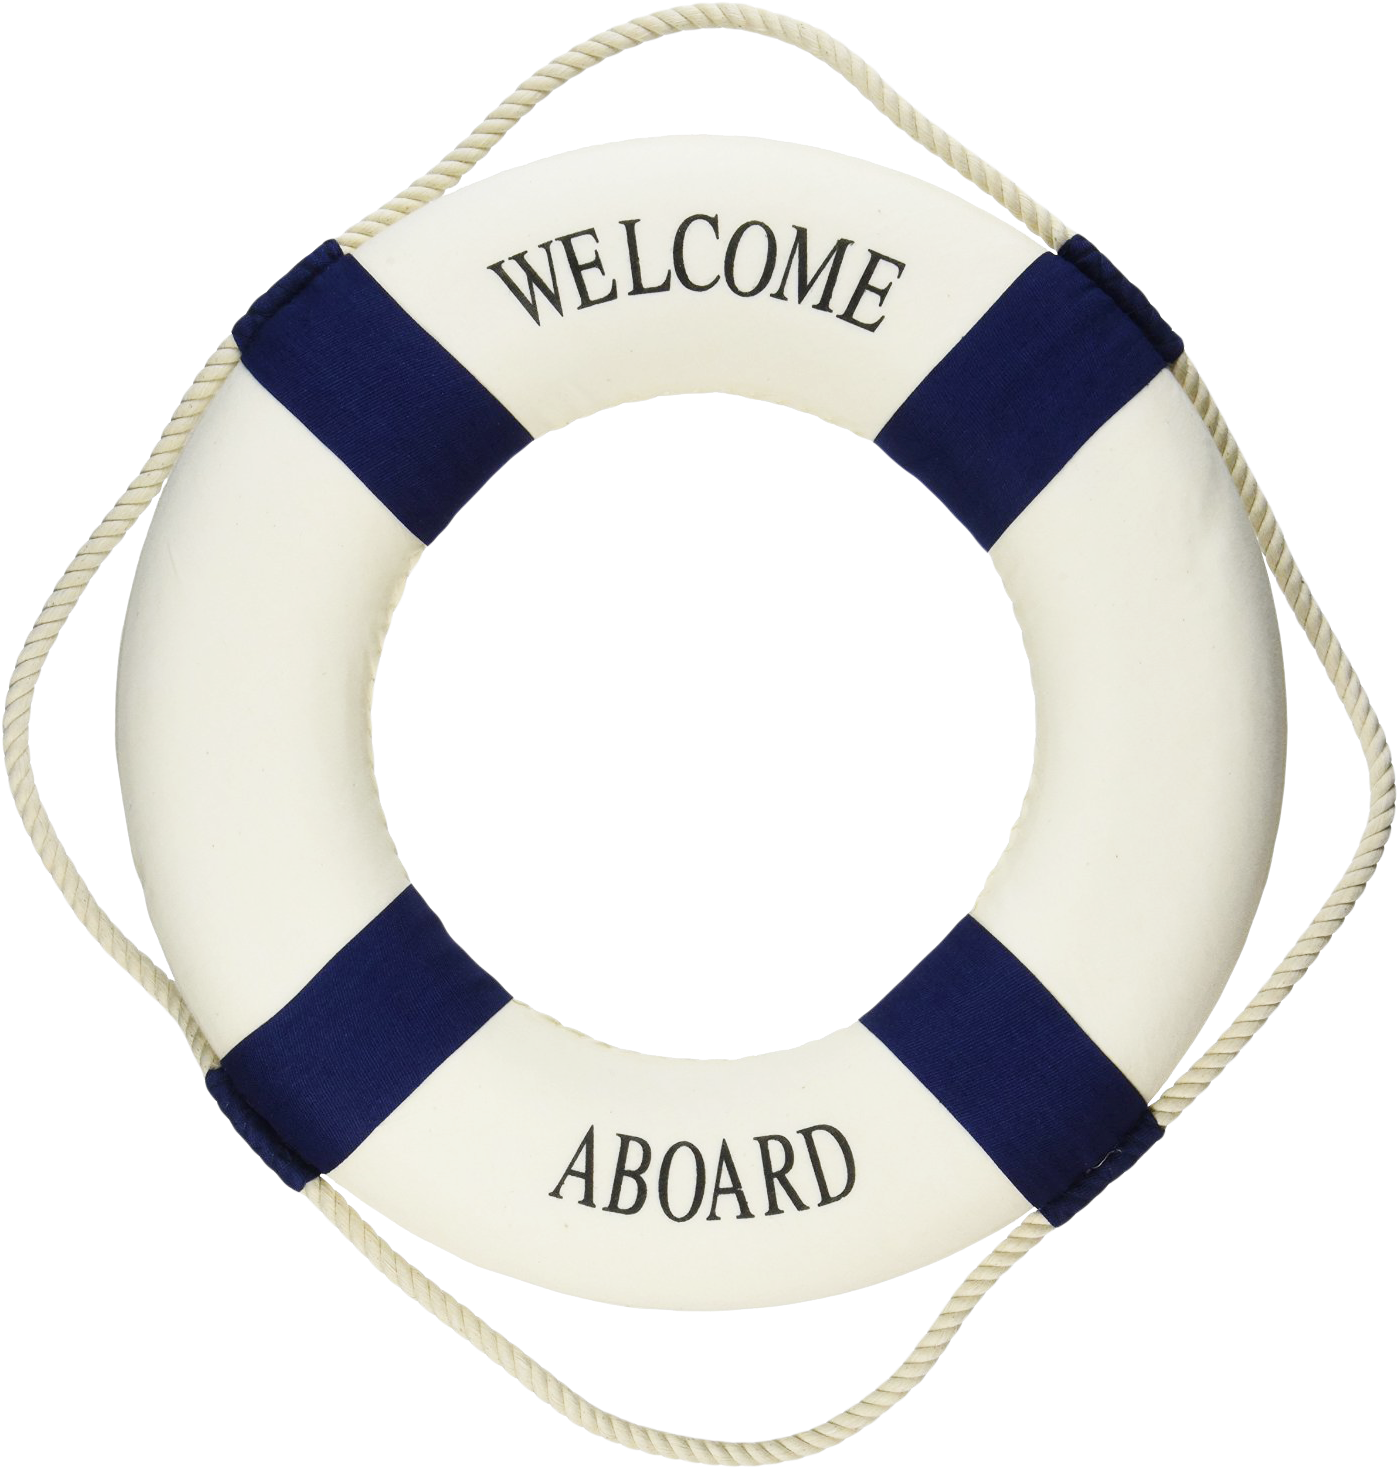 Welcome aboard lifering clipart clip black and white download Lifebuoy Png - Welcome Aboard Life Preserver Ring | Full ... clip black and white download